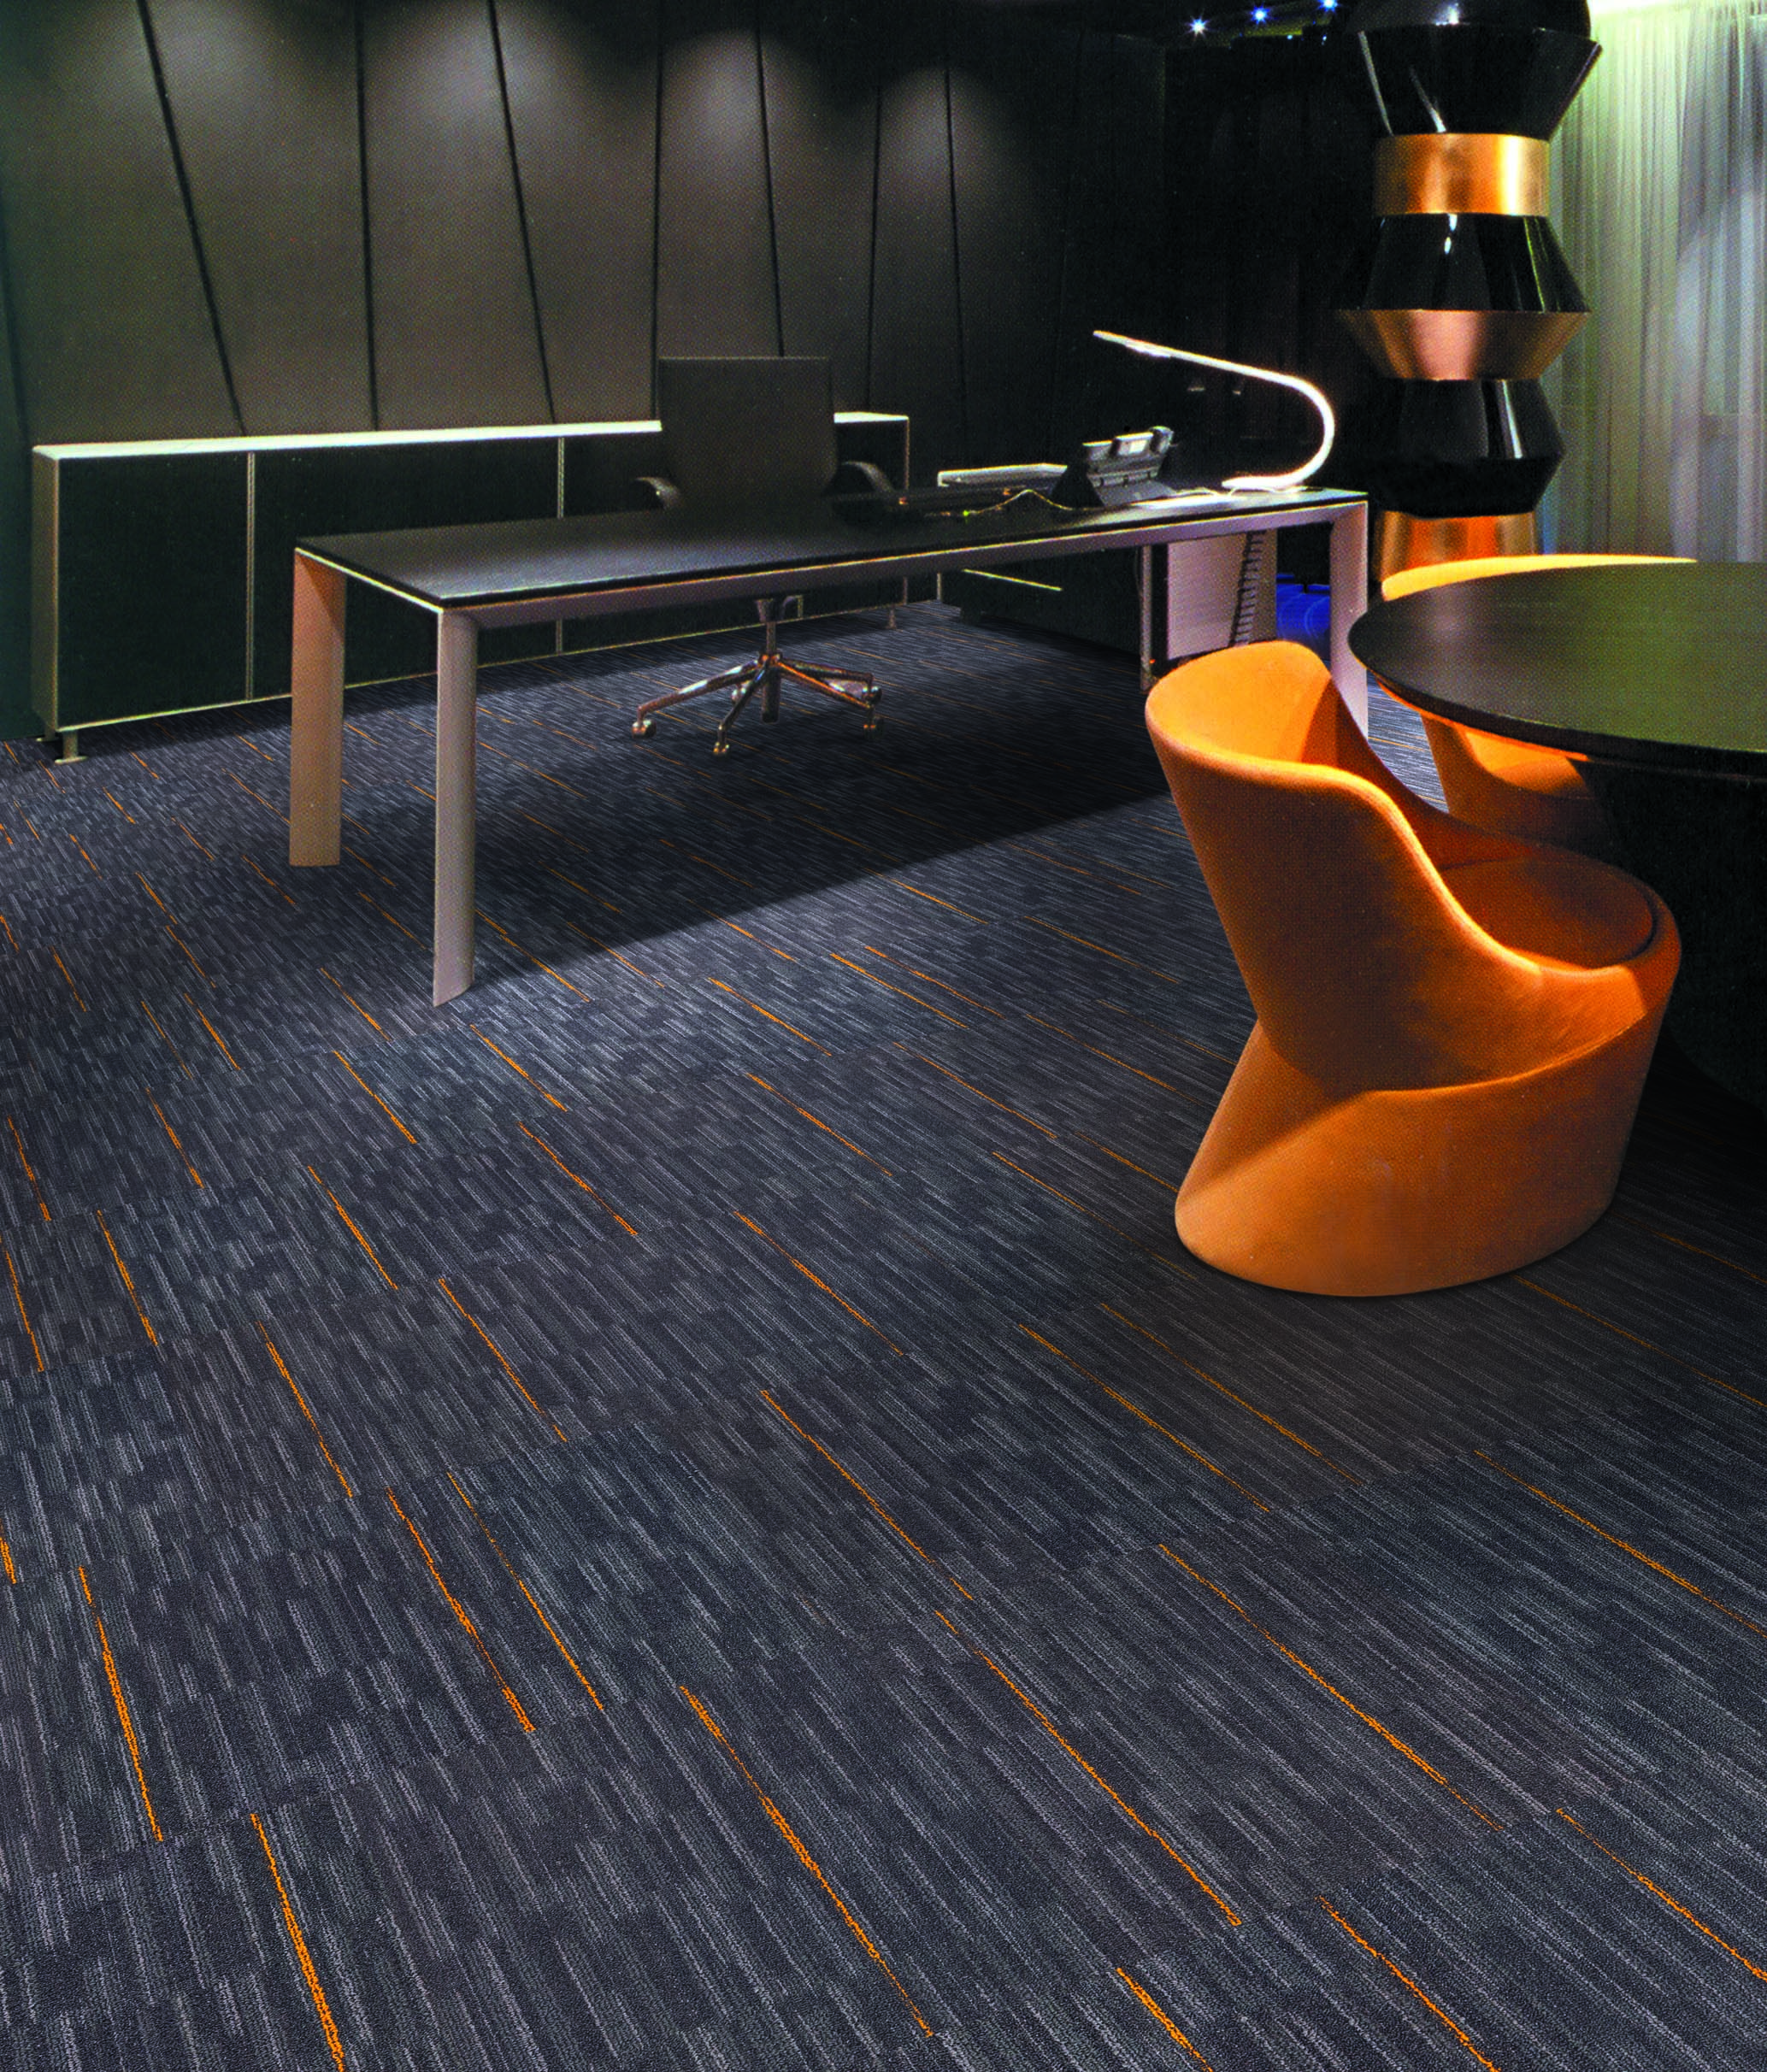 Every Tile Of City Star Has A Vibrant Coloured Line That Acts As An Accent To Give The Whole Floor An Interesting Eff Floor Coverings Carpet Tiles Flooring